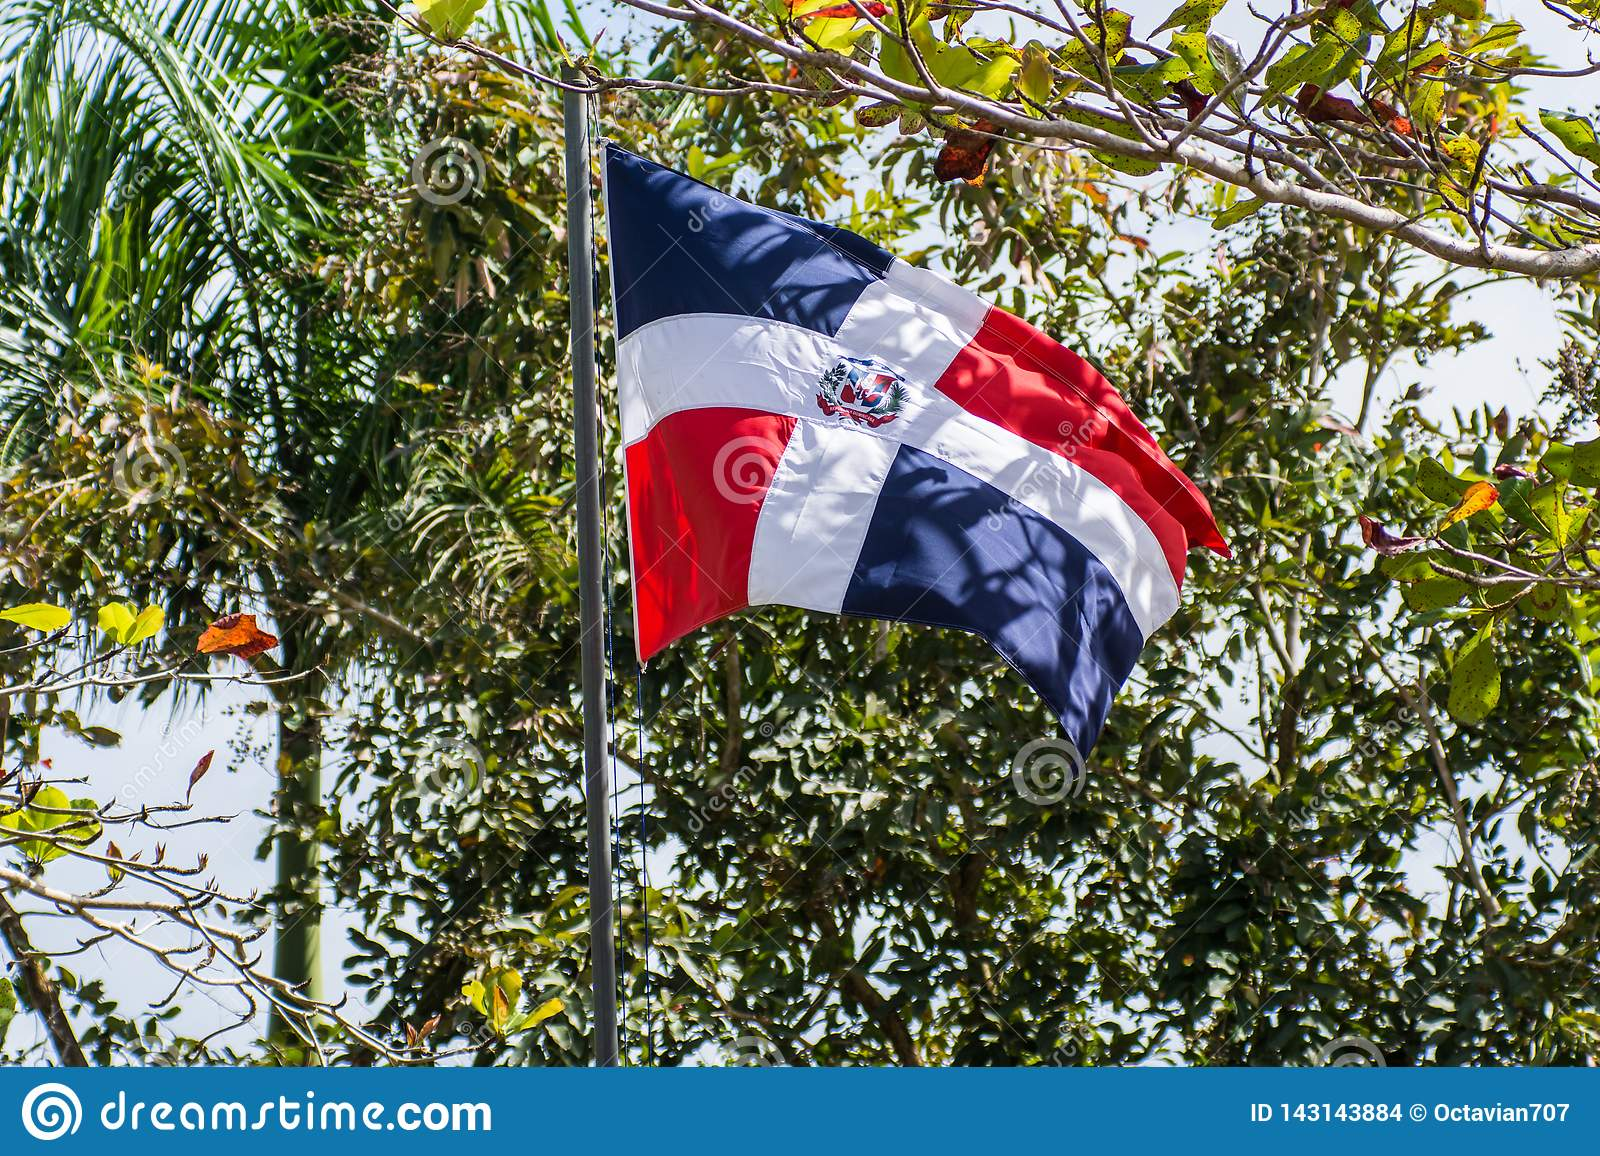 Dominican Republic flag on pole weaving